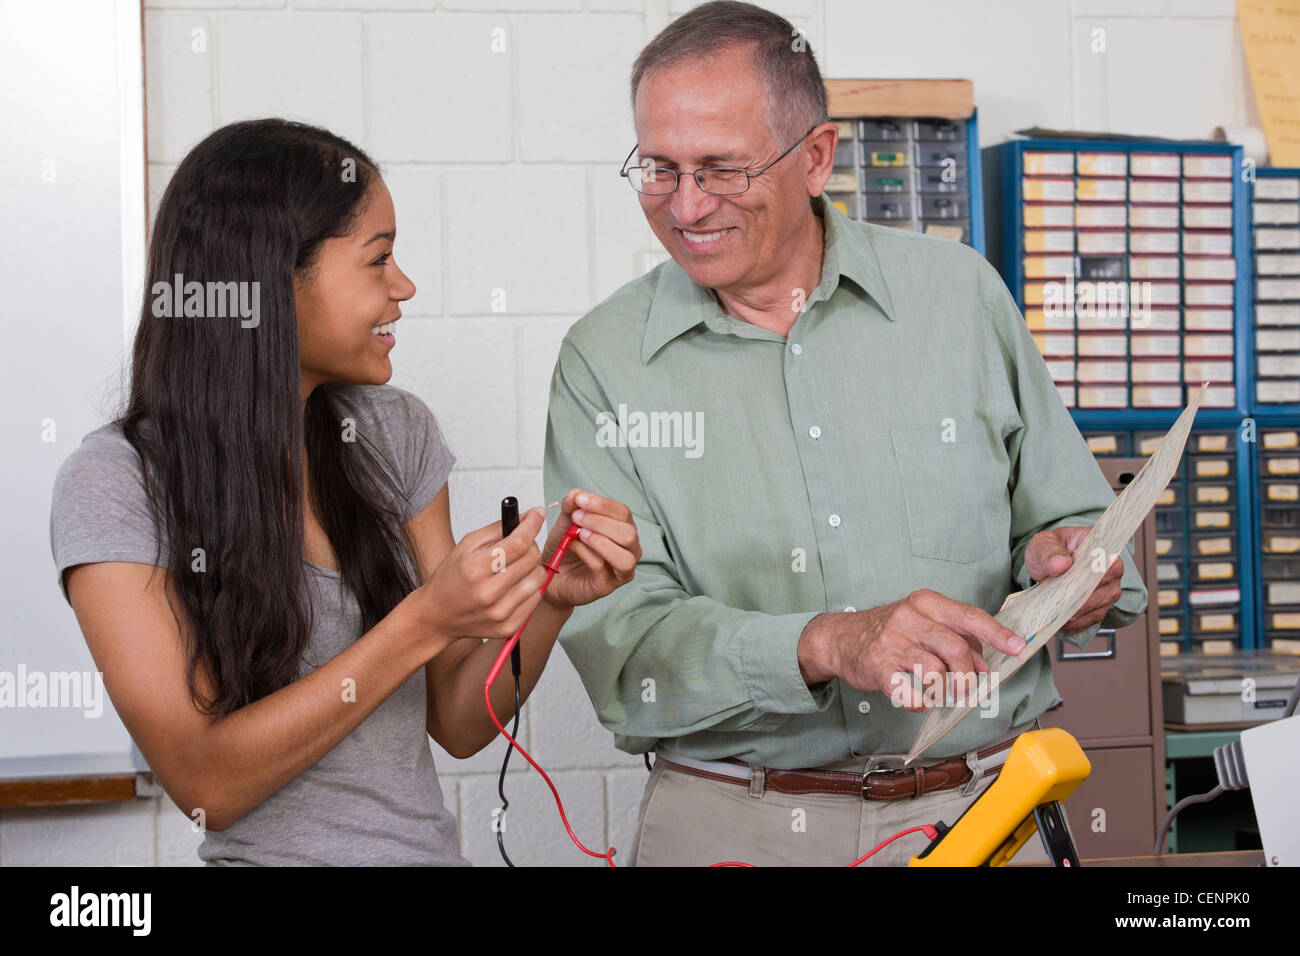 Engineering professor showing a resistor value chart to a student - Stock Image